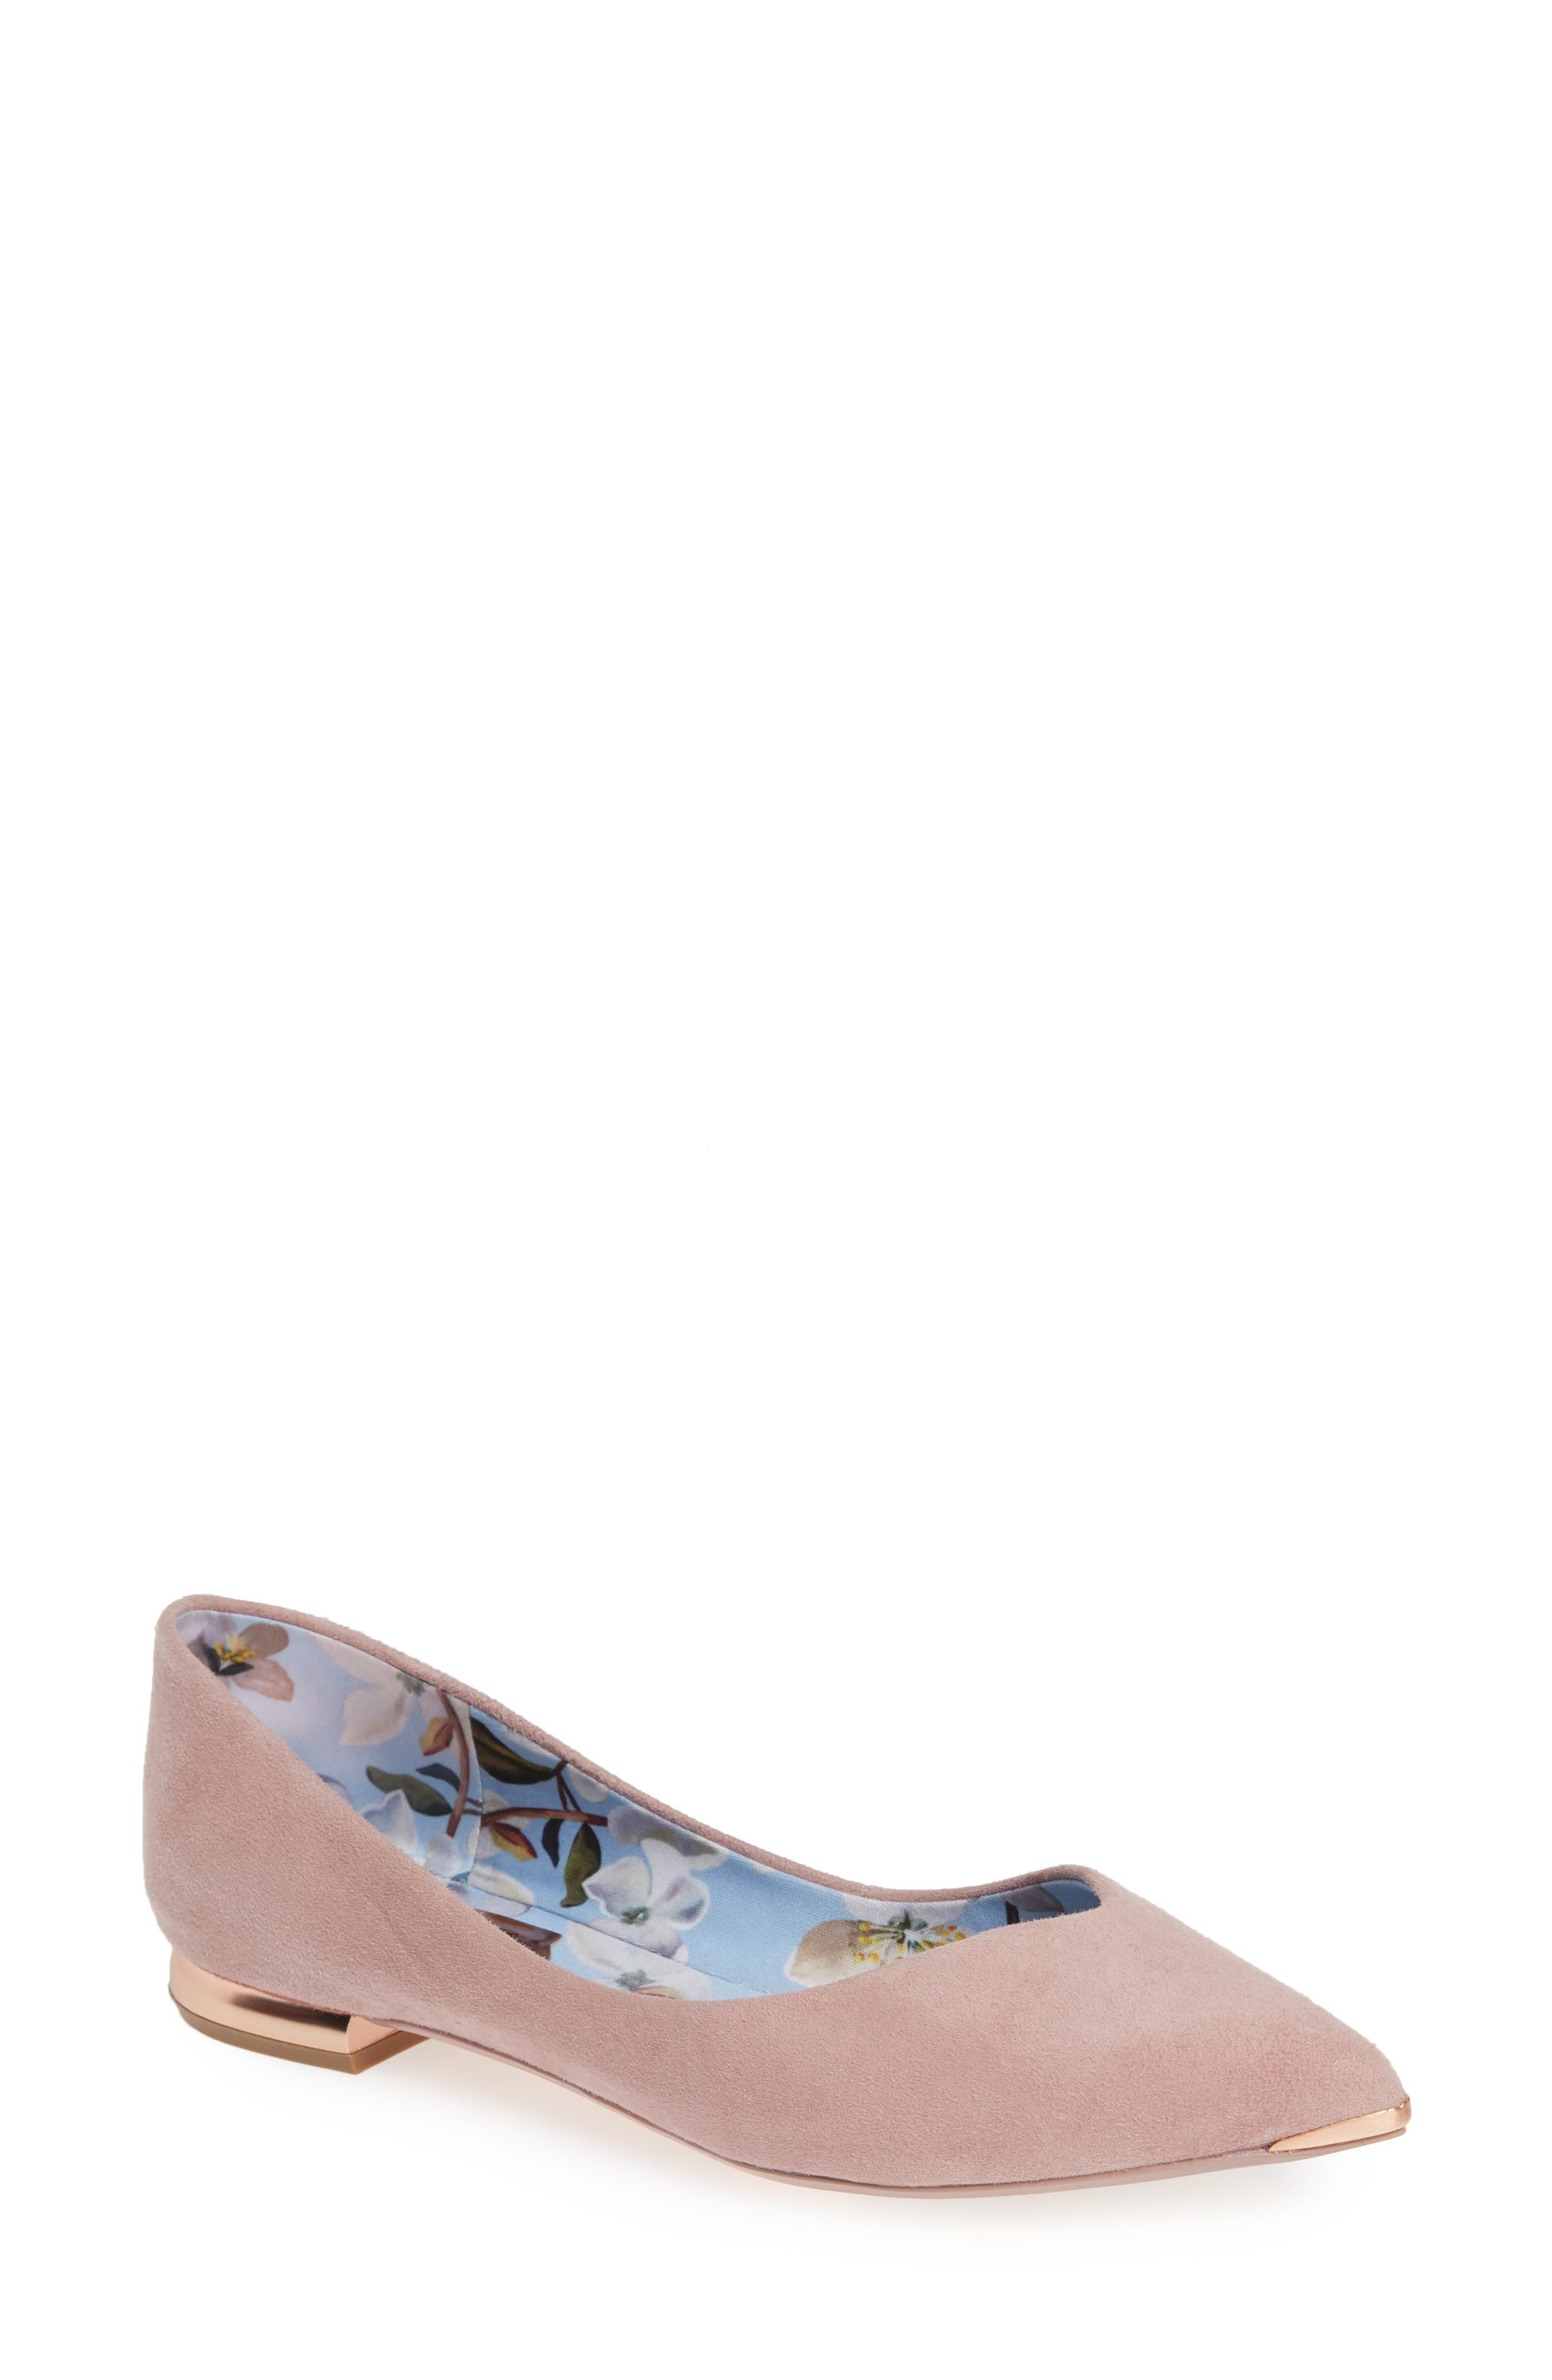 TED BAKER LONDON Mancies Pointy Toe Flat, Main, color, WINTER ROSE SUEDE